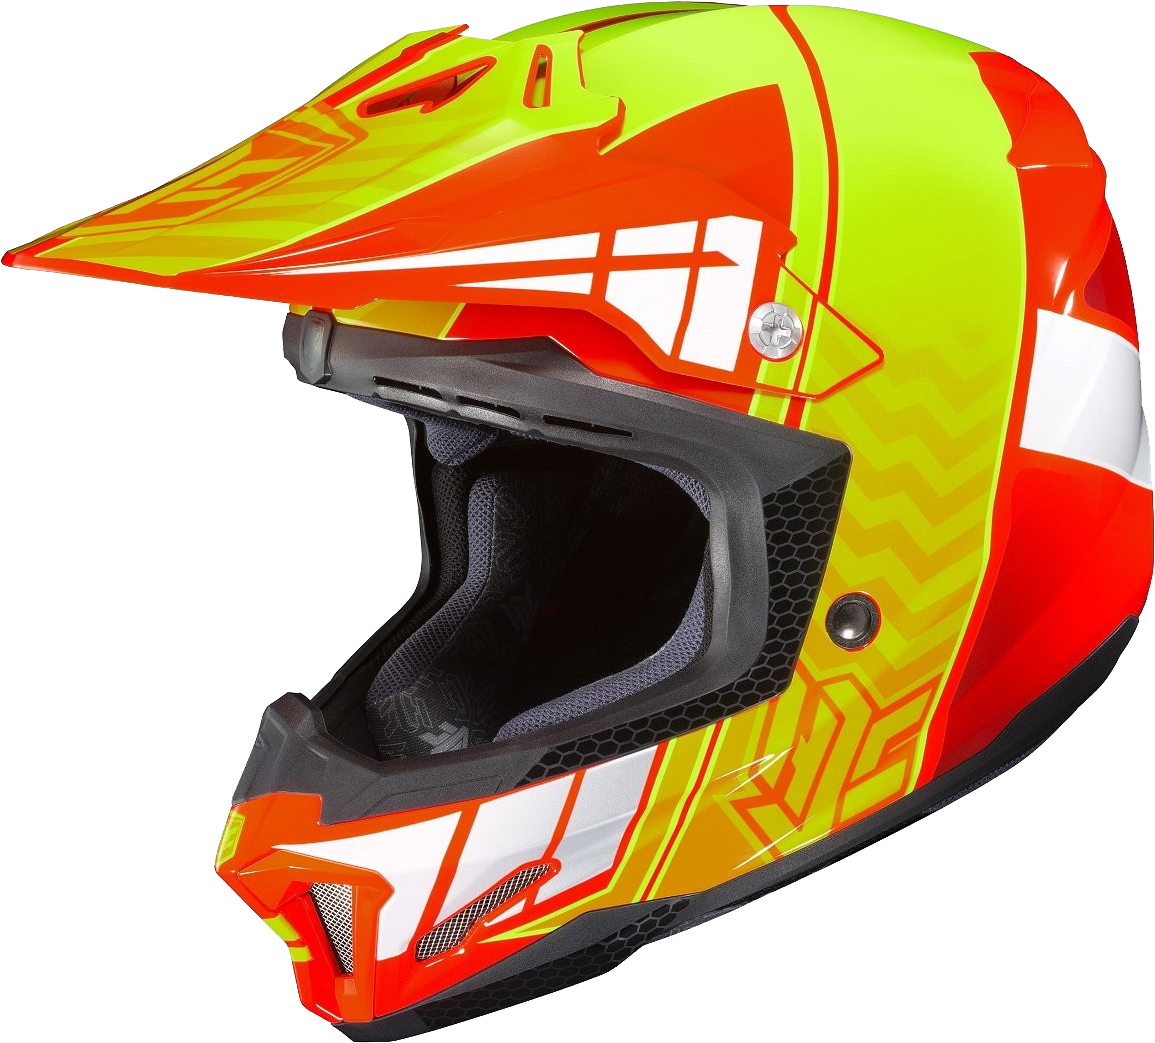 Motorcycle clipart orange. Helmets png image without